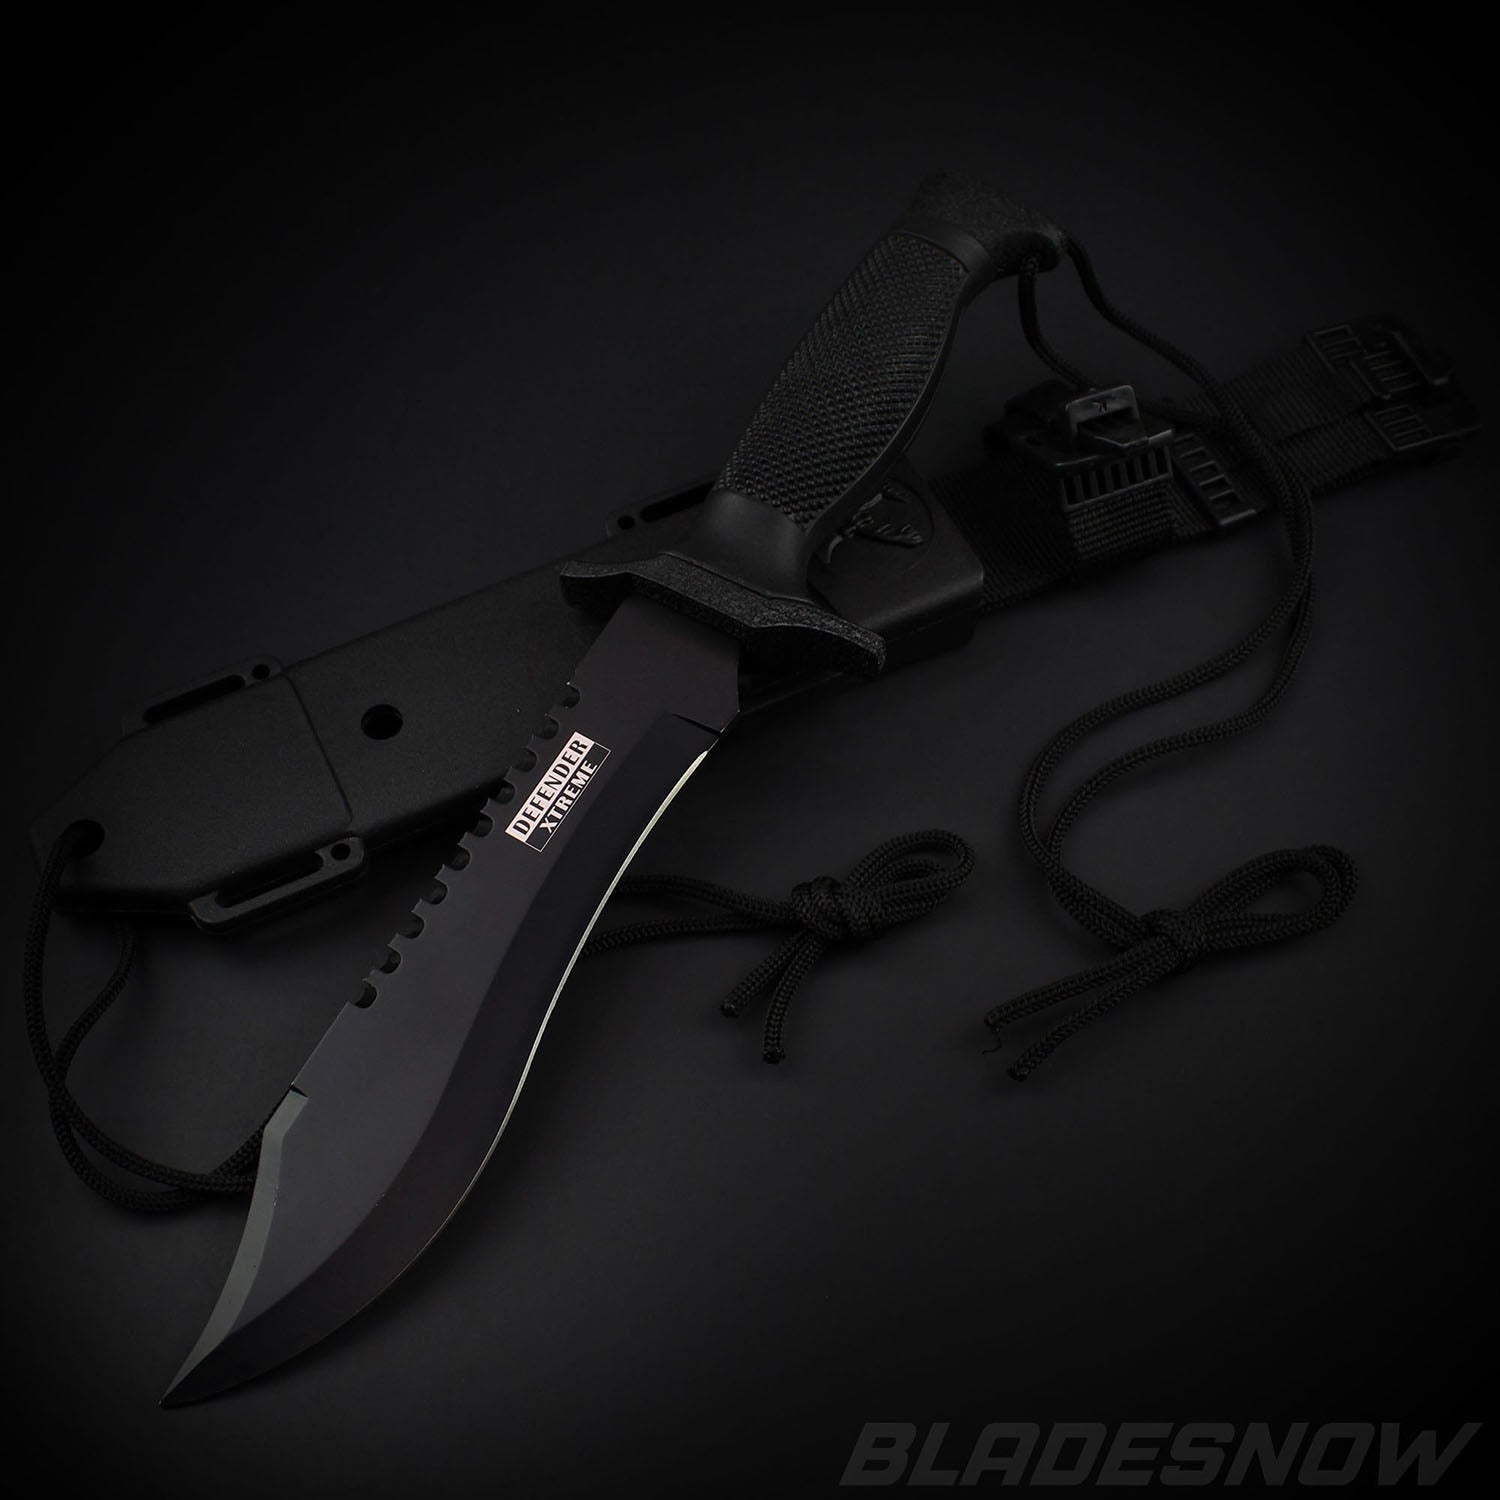 Combat Bowie Knife Black